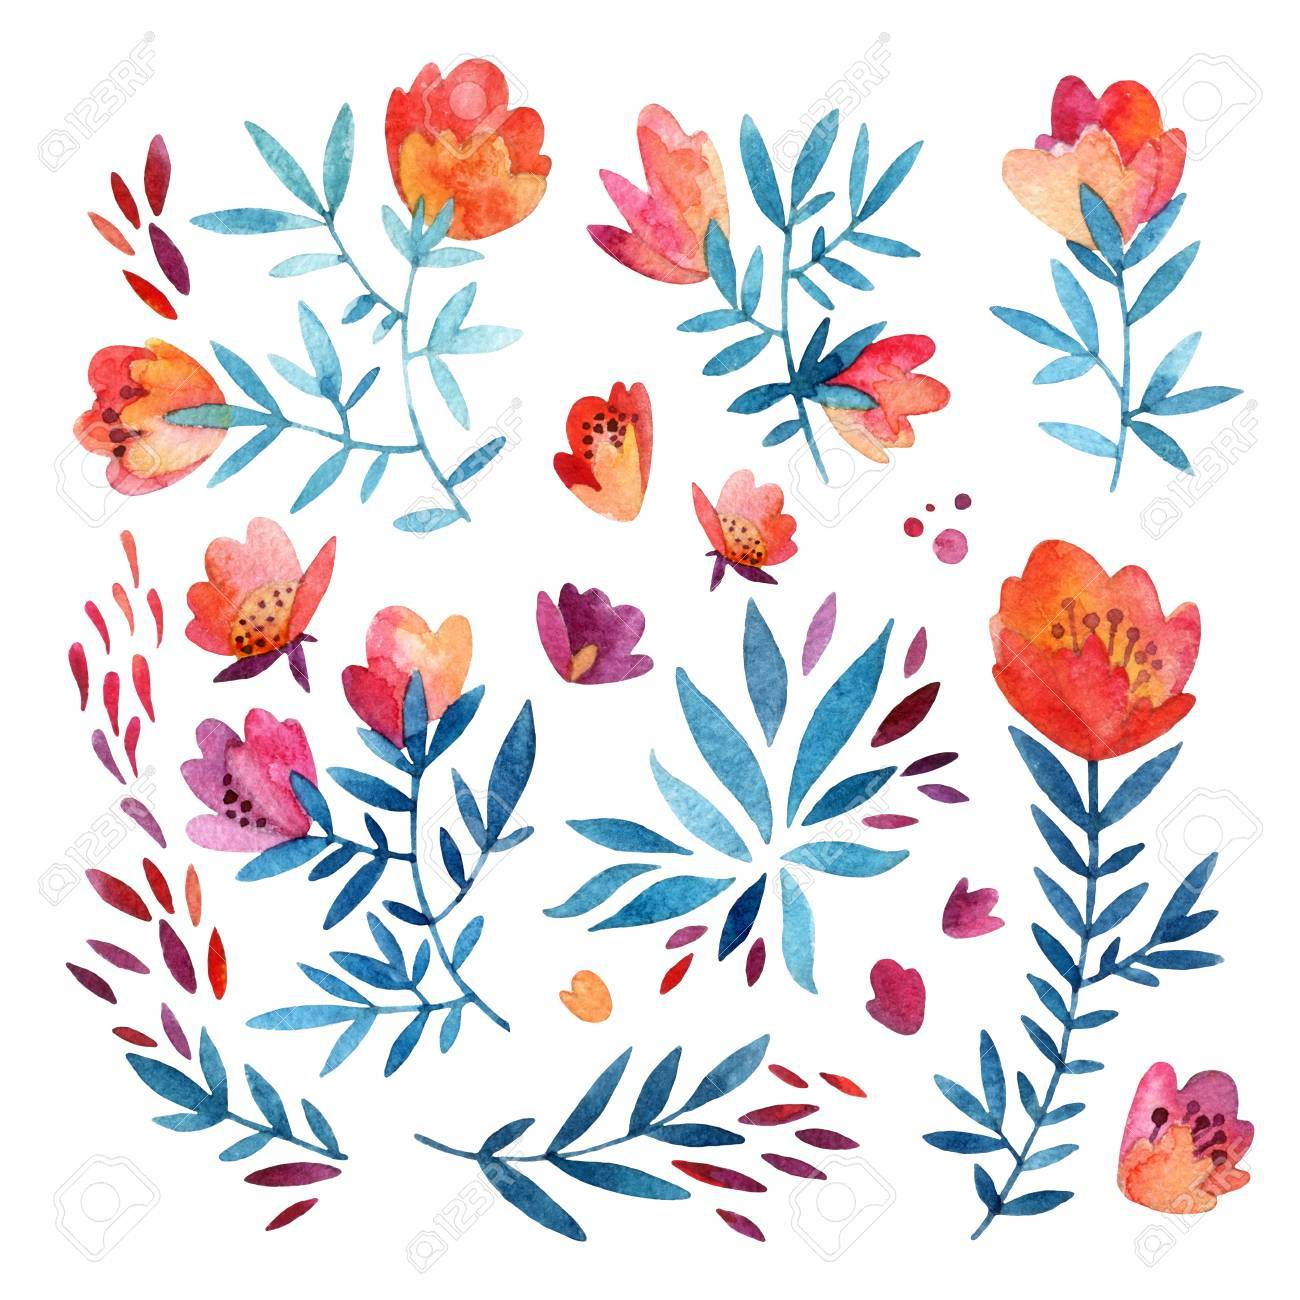 Abstract Watercolor Flowers And Leaves Isolated On White Background Detailed Foliage Elements Including Decorated